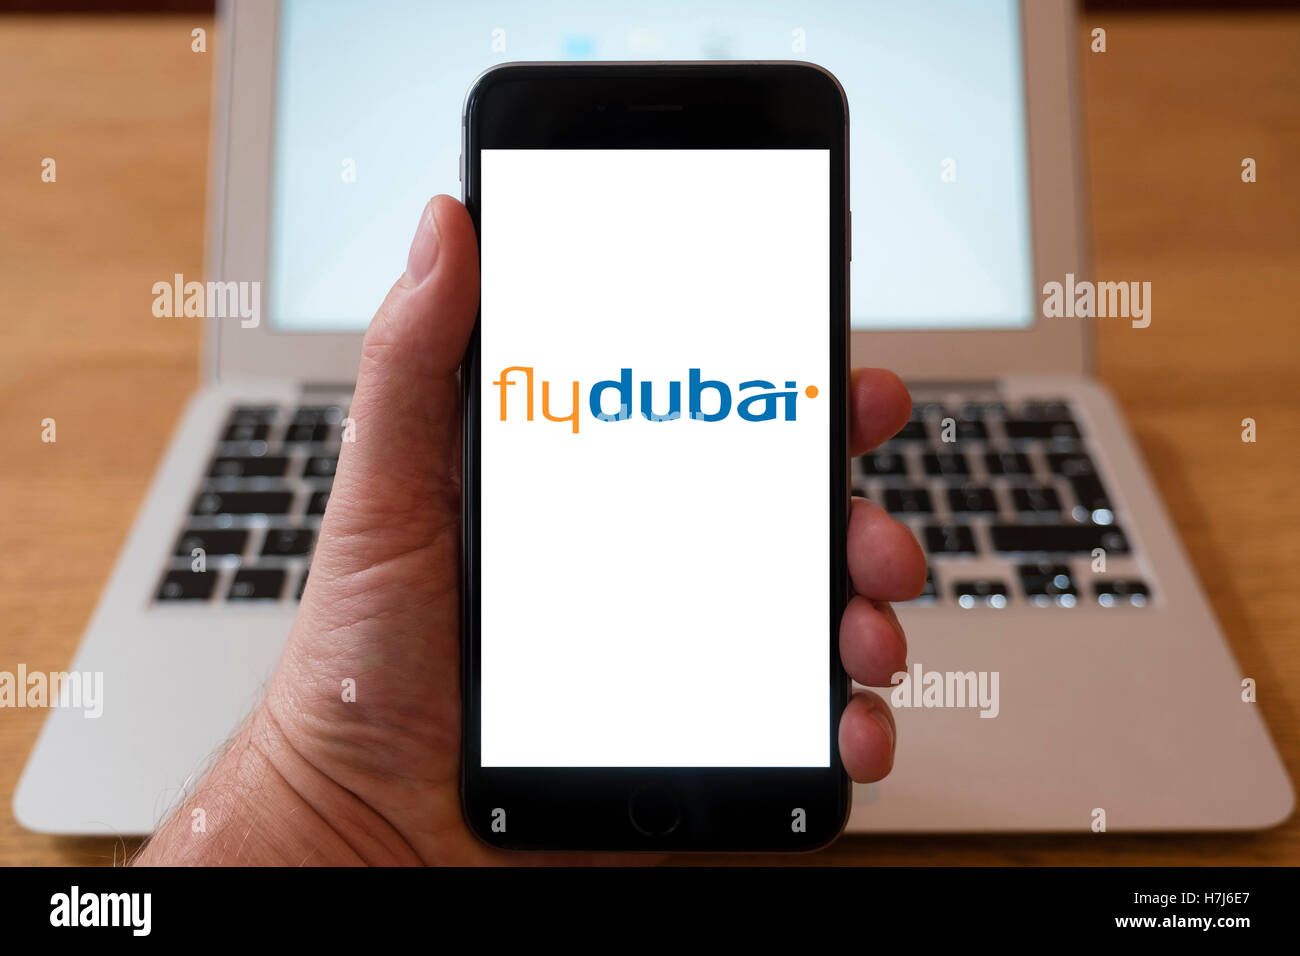 Using iPhone smart phone to display logo of Flydubai low-cost carrier from Dubai, UAE - Stock Image